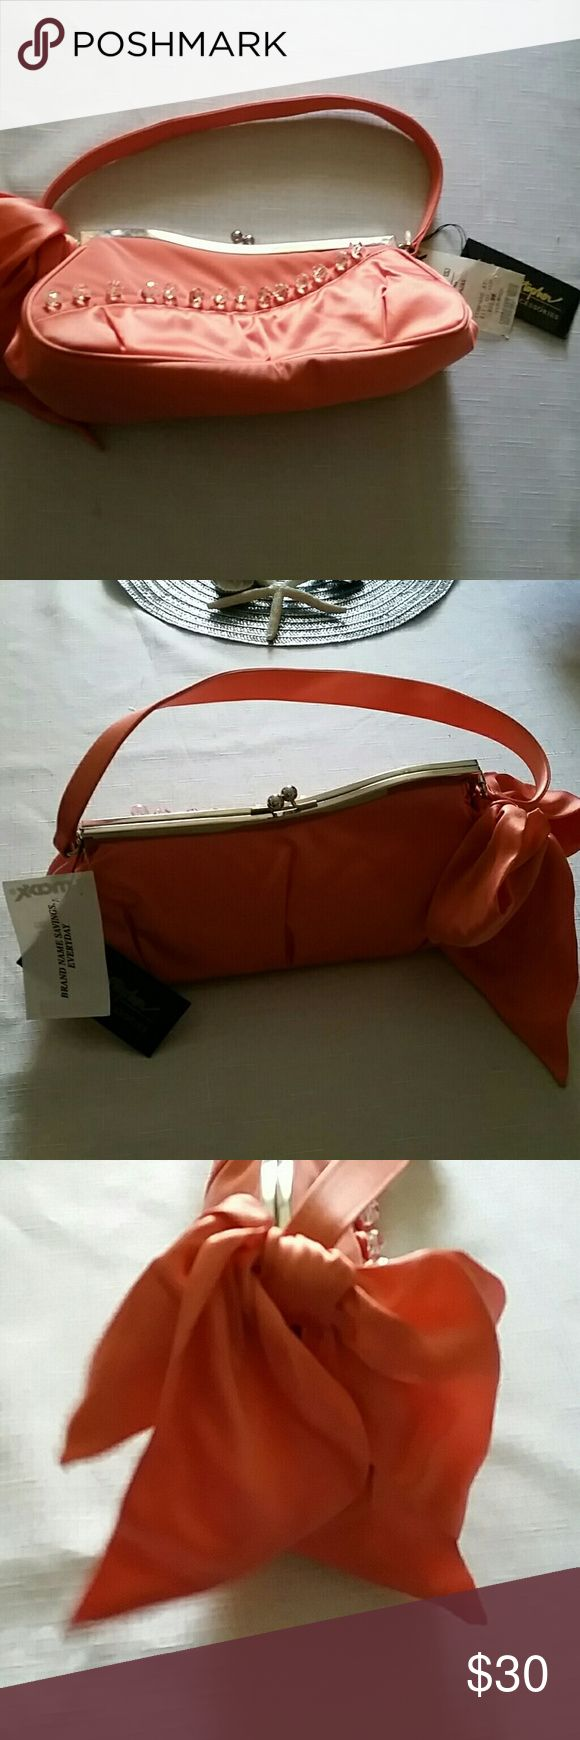 """Inge Christopher purse Peach satin Inge Christopher handbag. Clear crystal button looped trim on front. Silver kiss lock top closure. 10""""×4""""×2.5"""". Never used. inge Christopher Bags"""